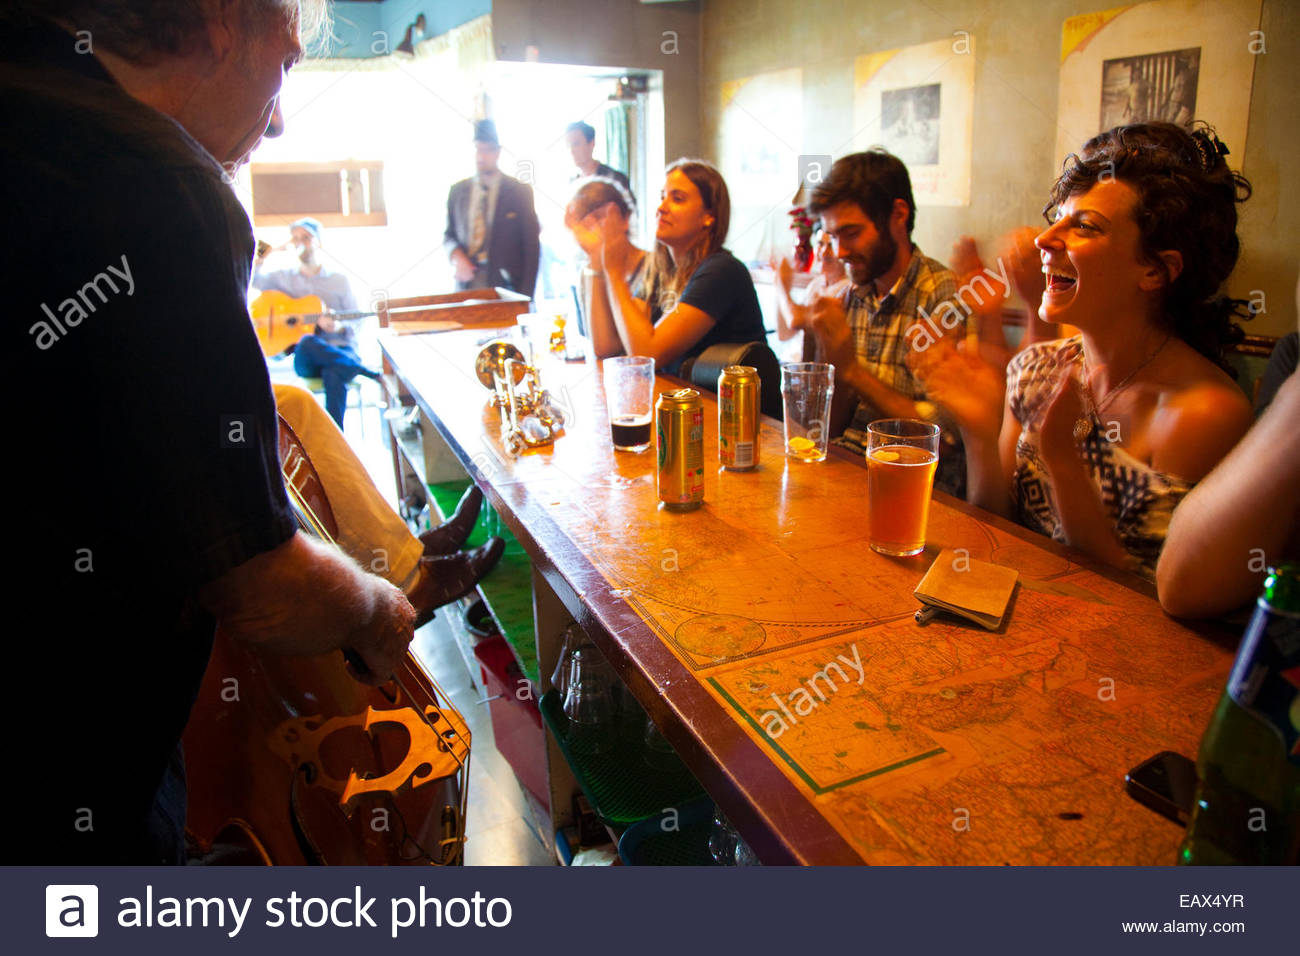 Sunlight streams into the The Communist's Daughter as people enjoy drinks and music at the bar near Queen West. - Stock Image